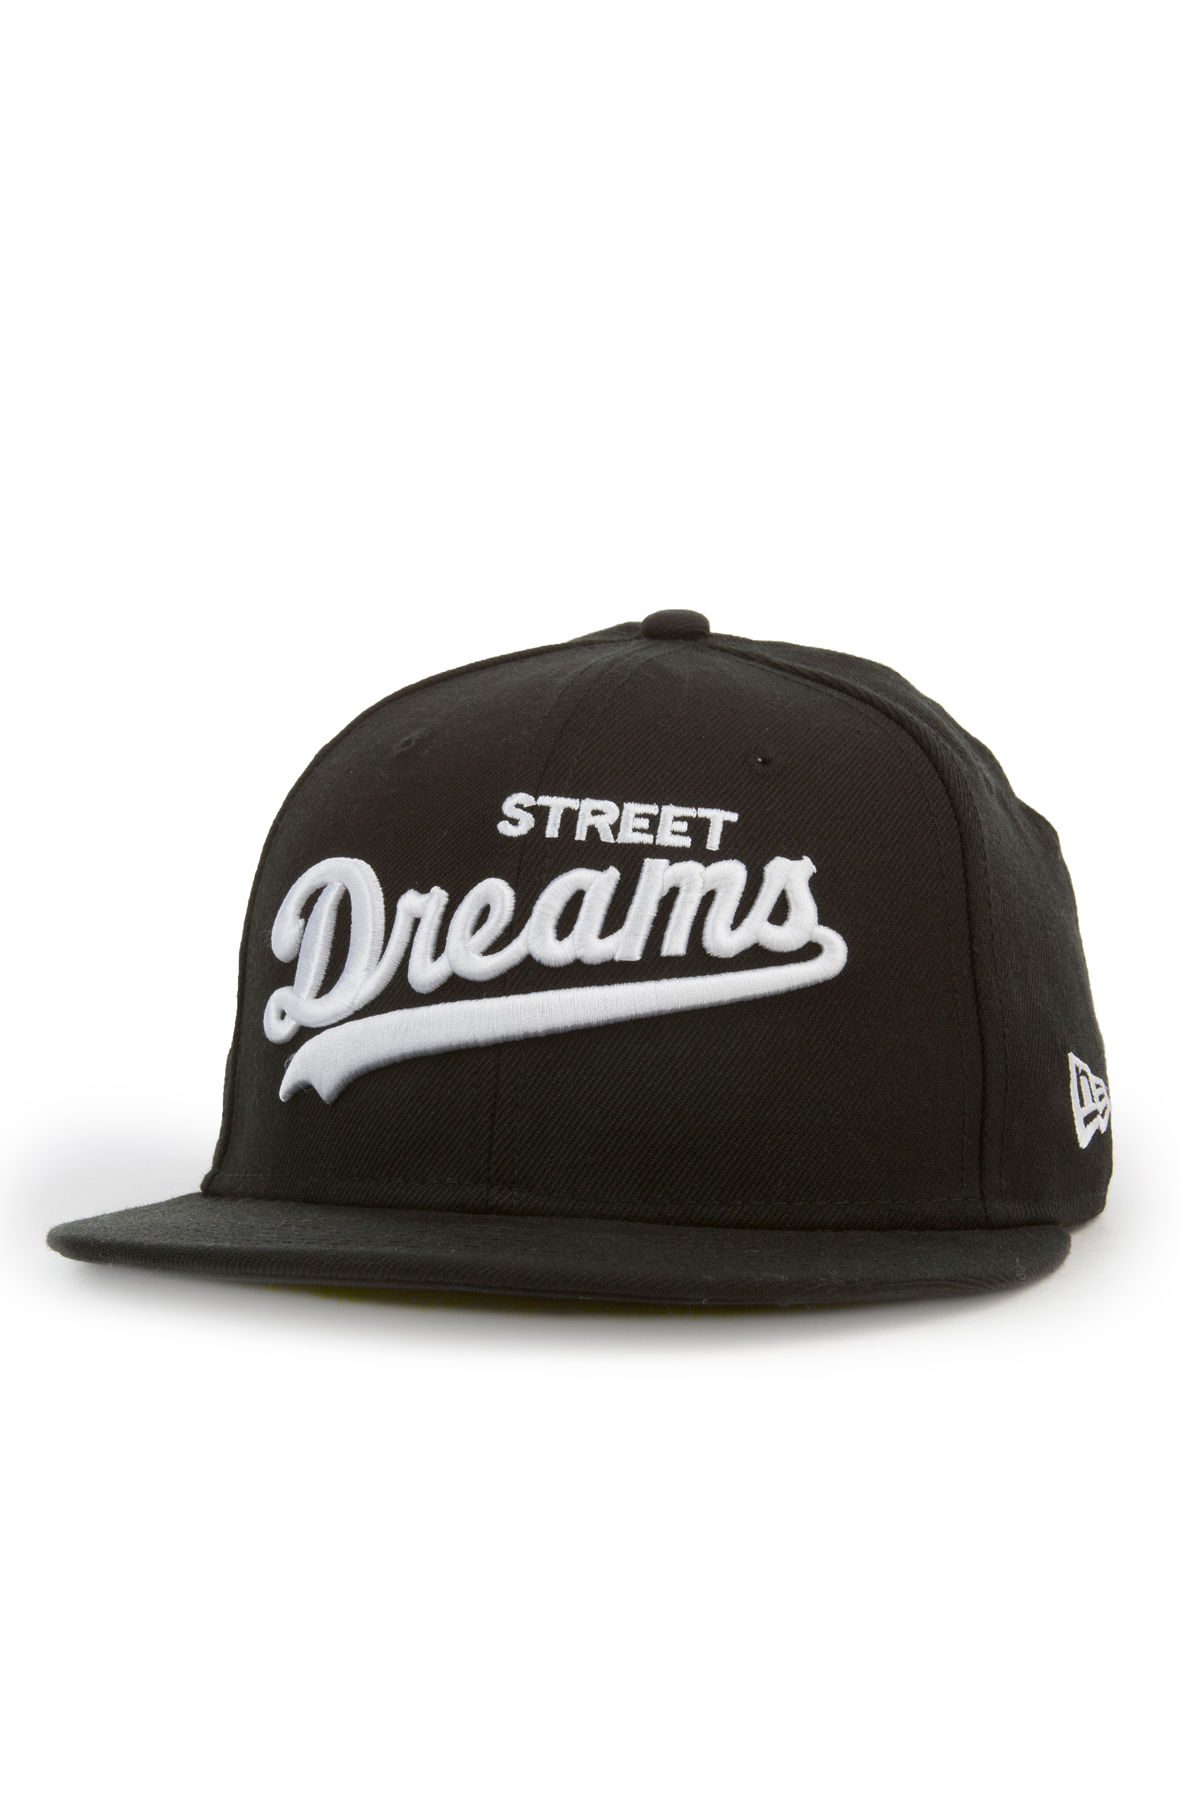 Image of Major League New Era Fitted Hat in Black